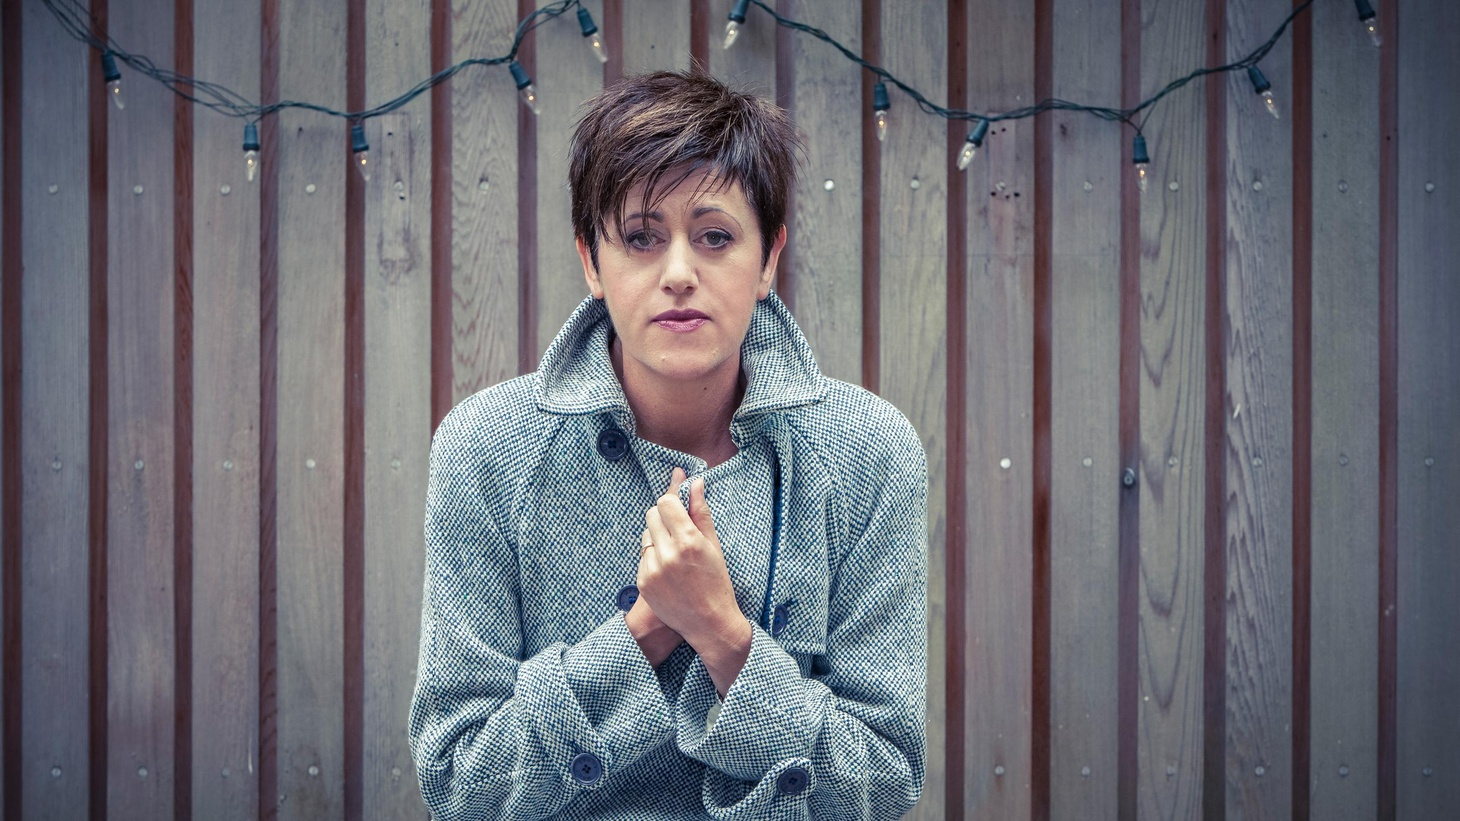 Everything but the Girl's Tracey Thorn gives us her take on the holidays on her first Christmas record, a mix of traditional favorites and new tracks...